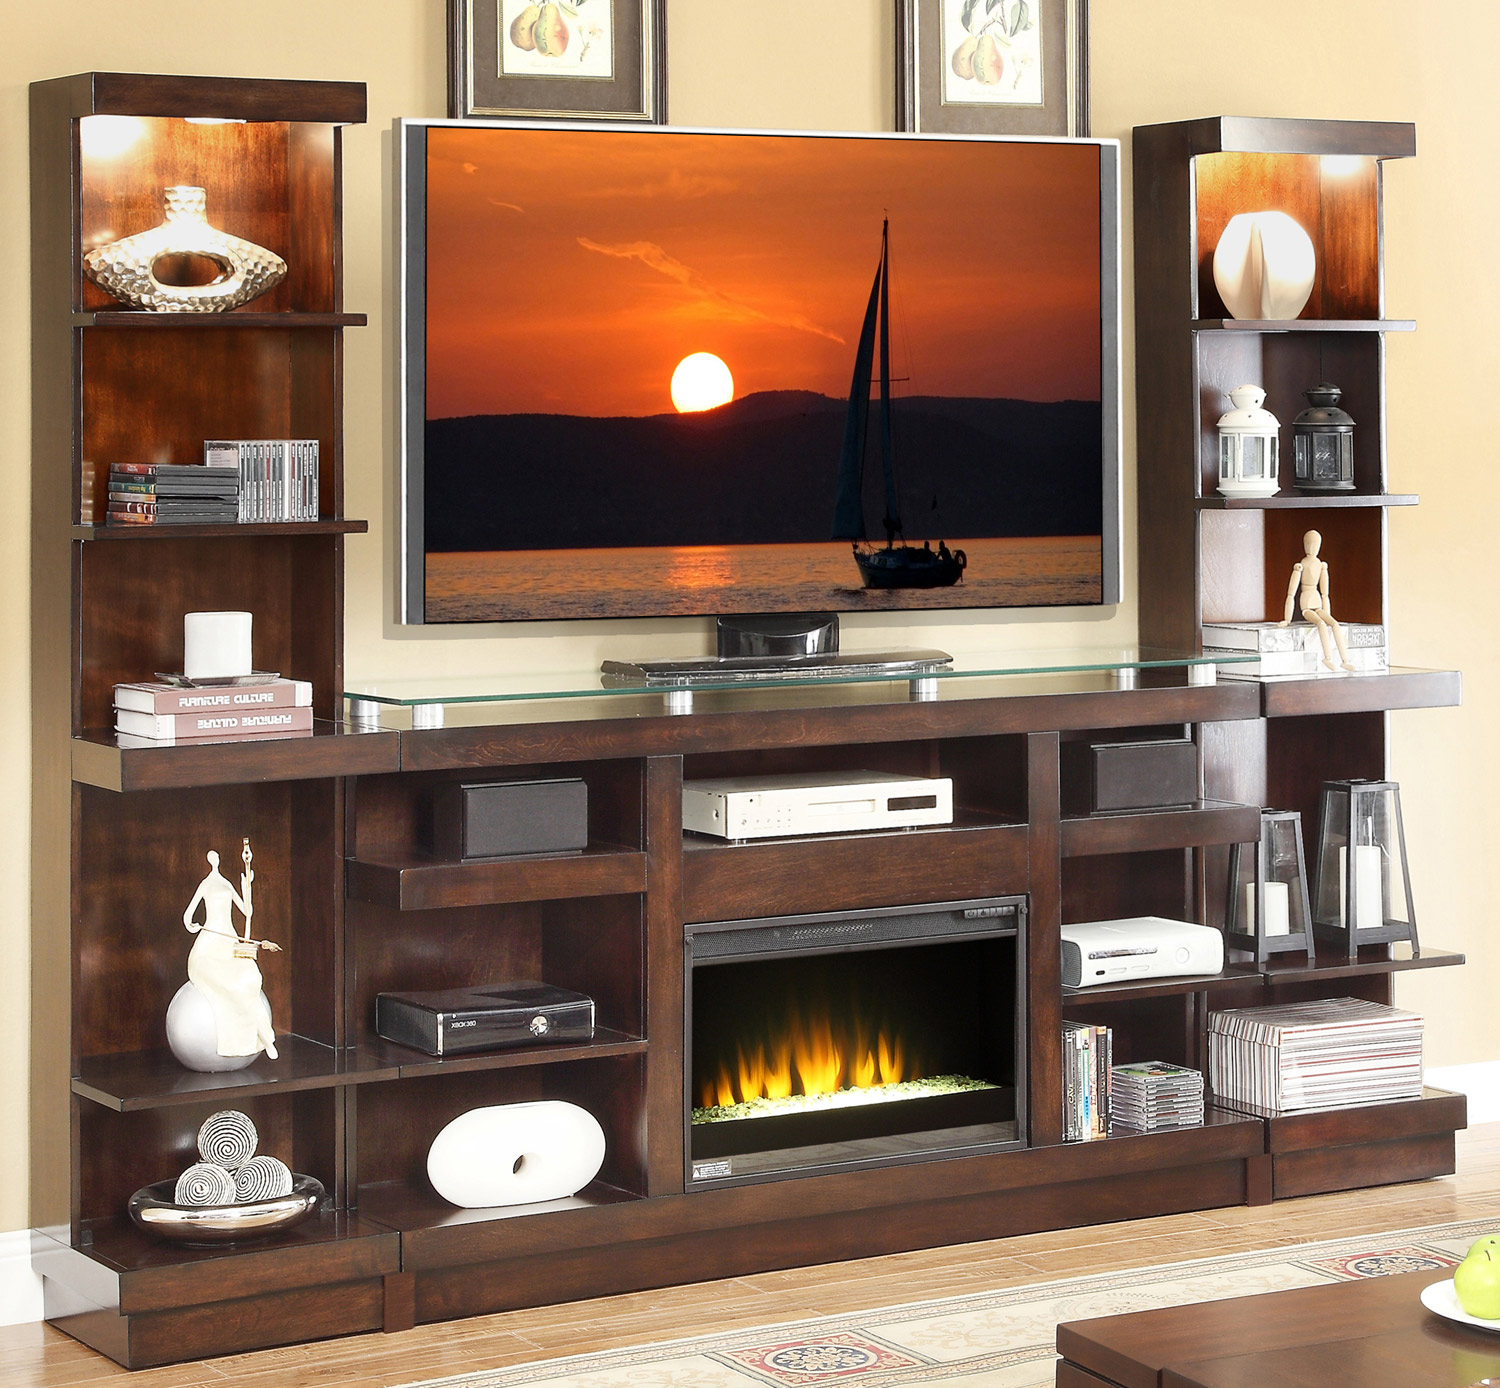 Legends fireplace console and consoles